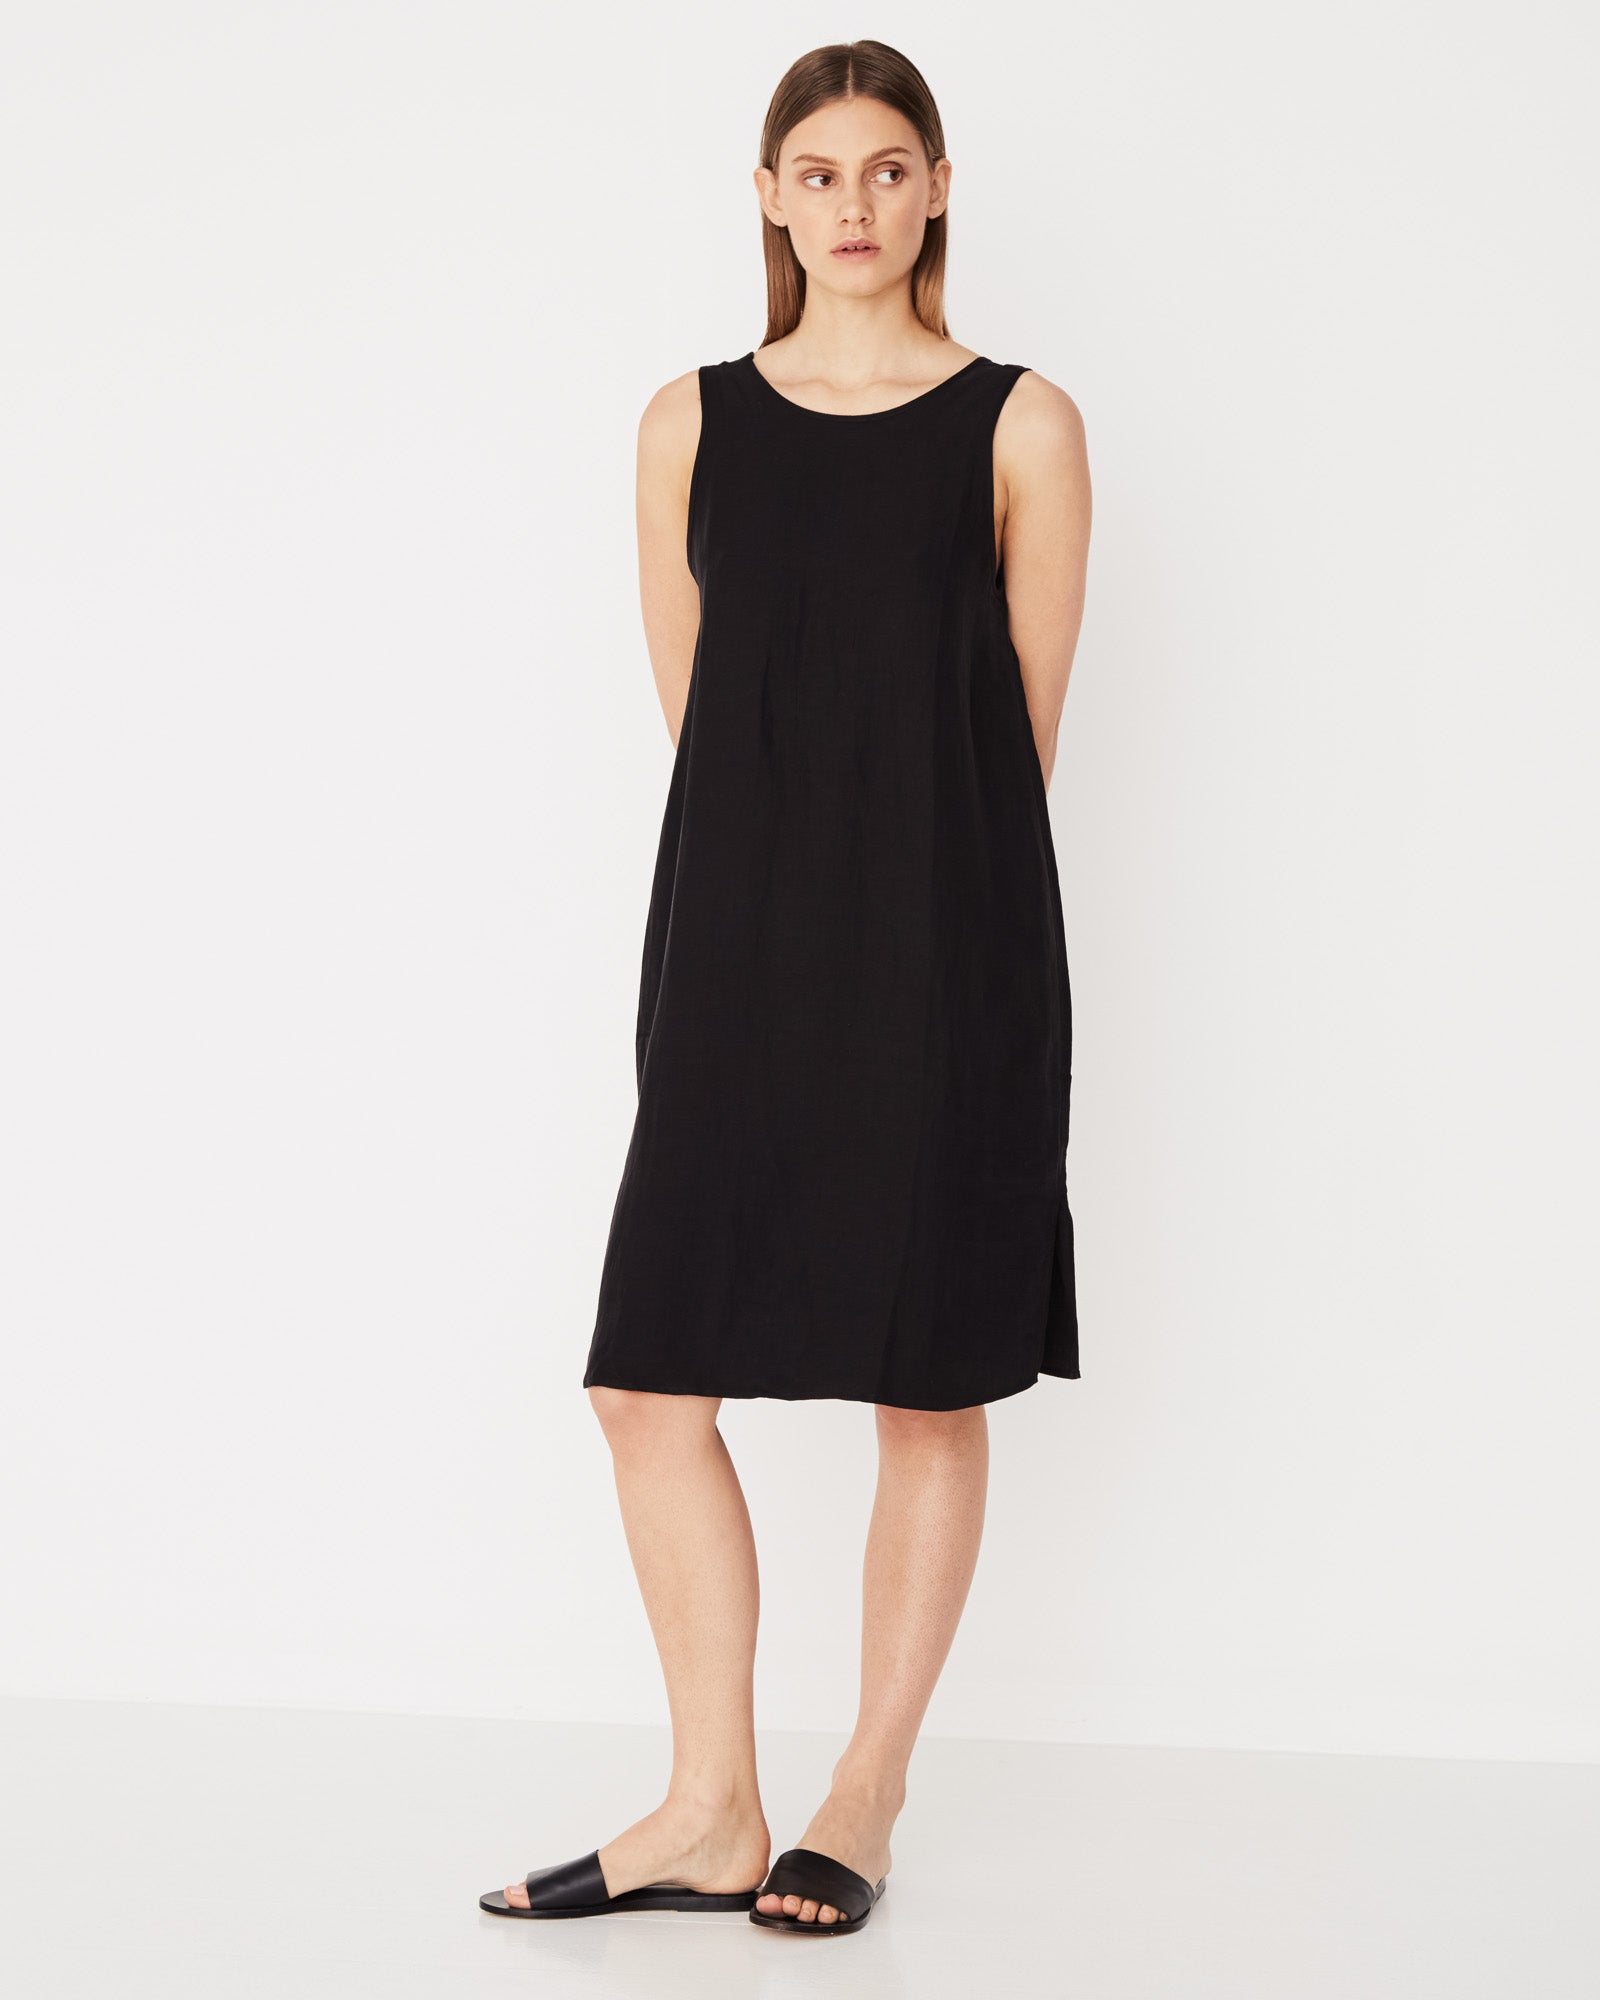 Contrast Dress Black